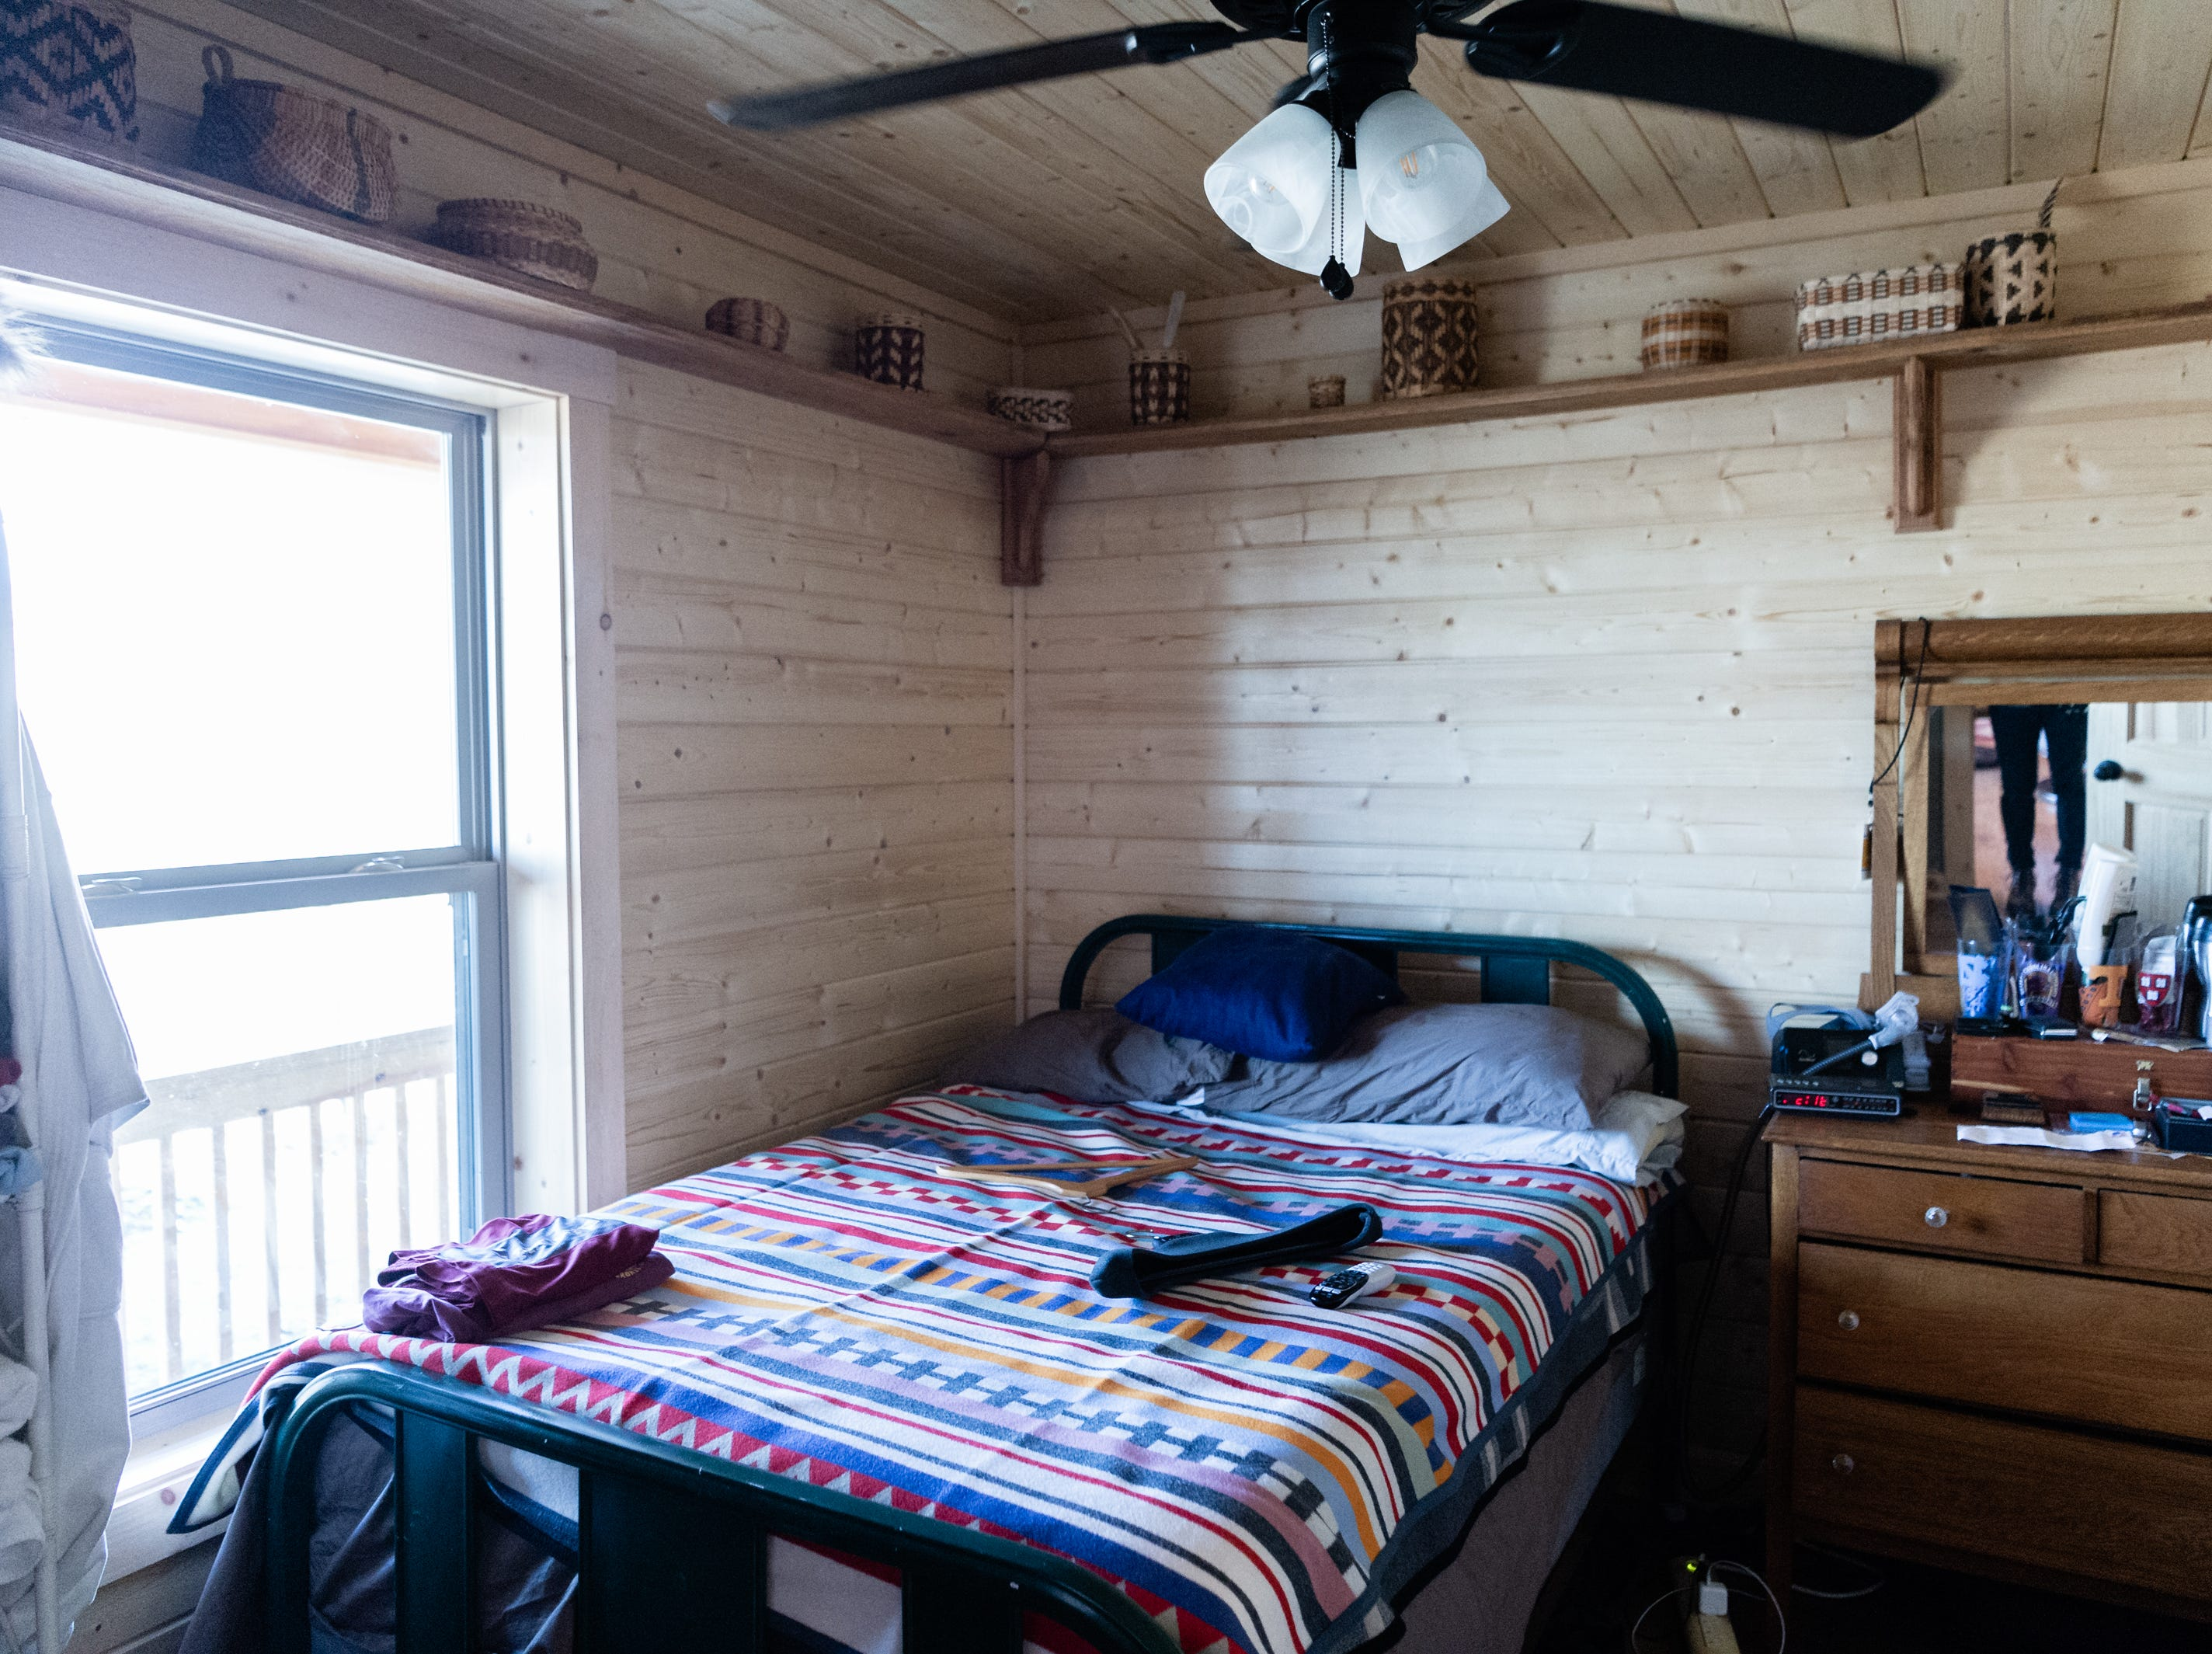 A bedroom in the log cabin home of Vangie Stephens and Tommy Stephens in Cherokee which was designed by Vangie.